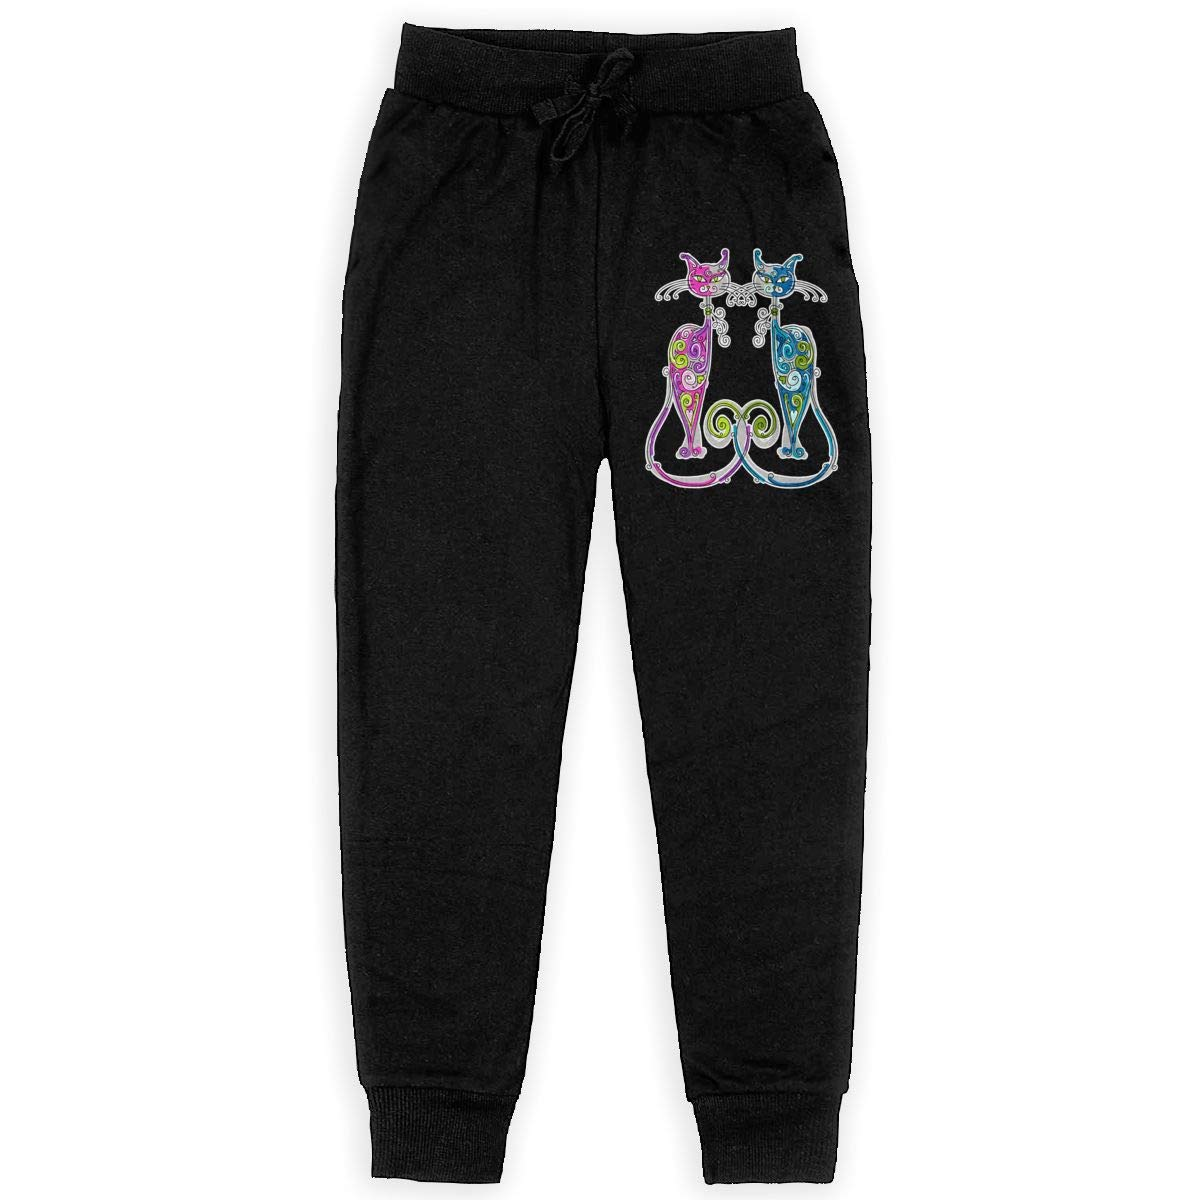 Joggers for Boys Pink and Blue Cat Kids Joggers Pants//Athletic Pants Comfortable Cotton Sweatpants